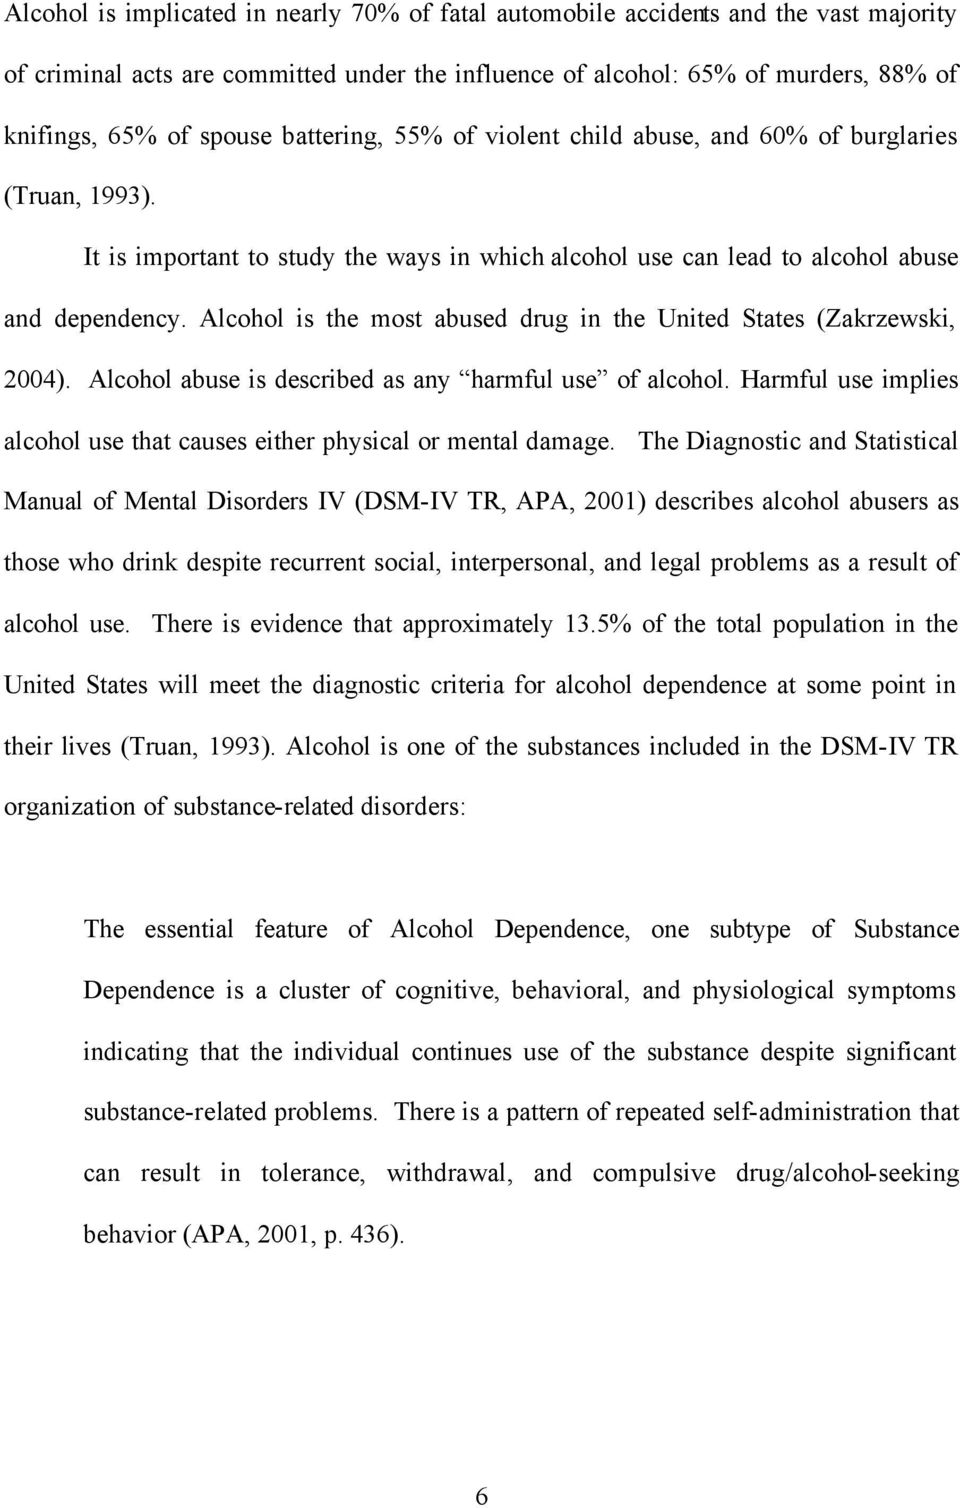 Alcohol is the most abused drug in the United States (Zakrzewski, 2004). Alcohol abuse is described as any harmful use of alcohol.